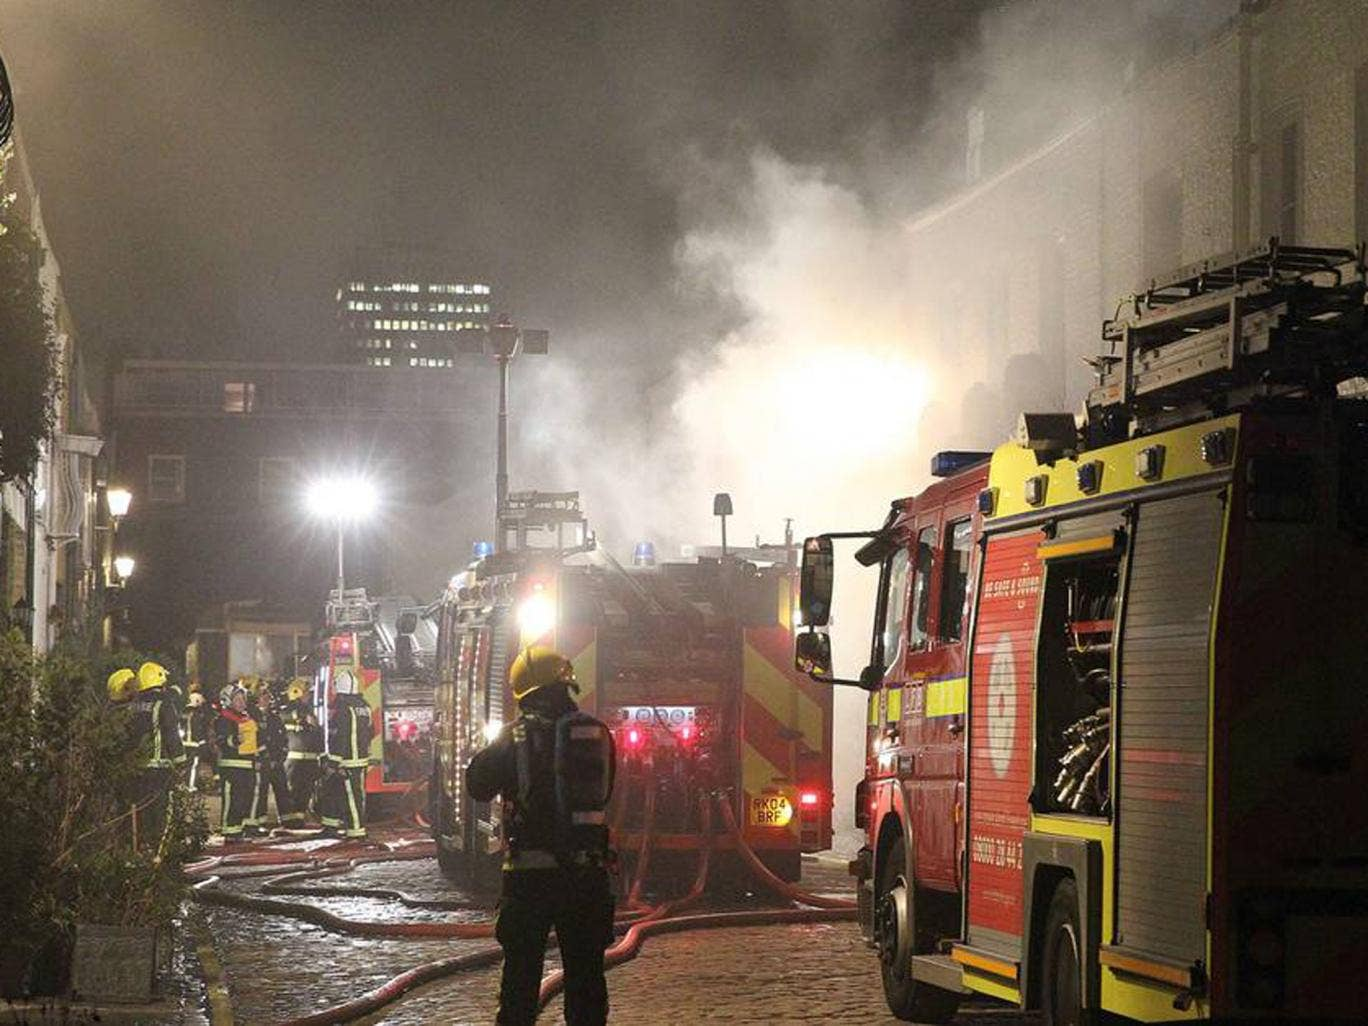 Emergency workers battle to contain the flames